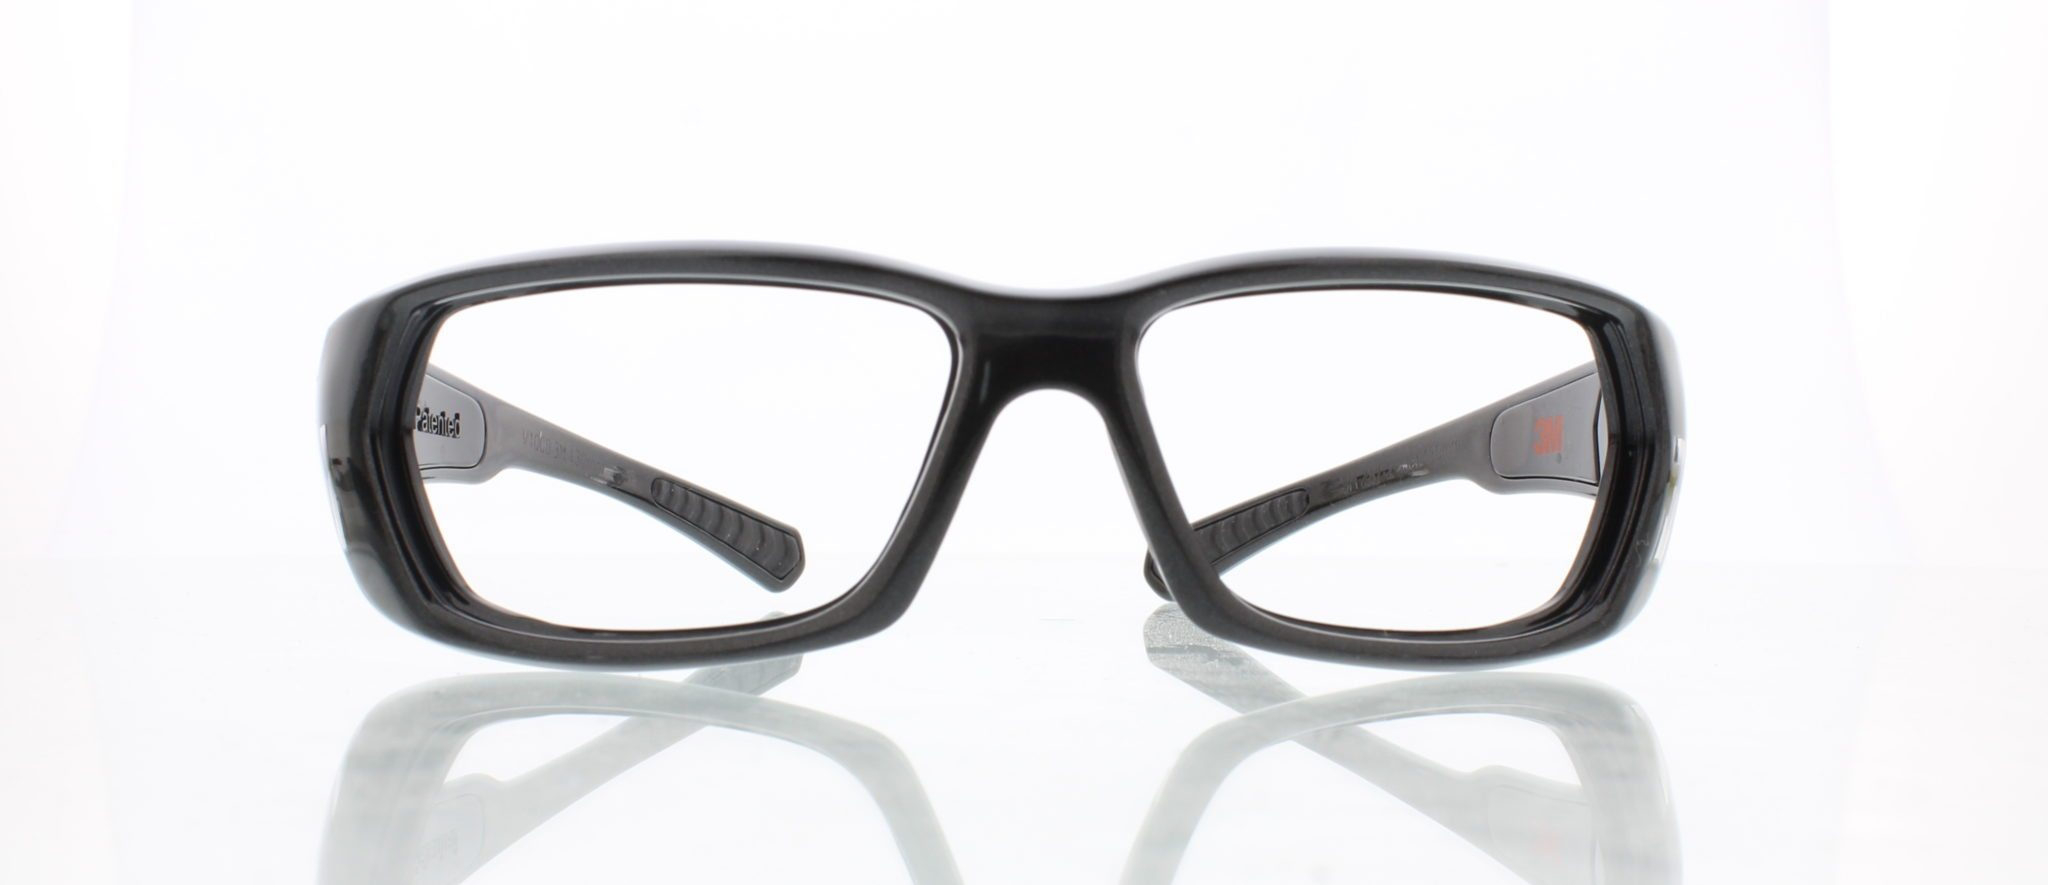 3m v1000 safety glasses 3m ansi rated industrial safety